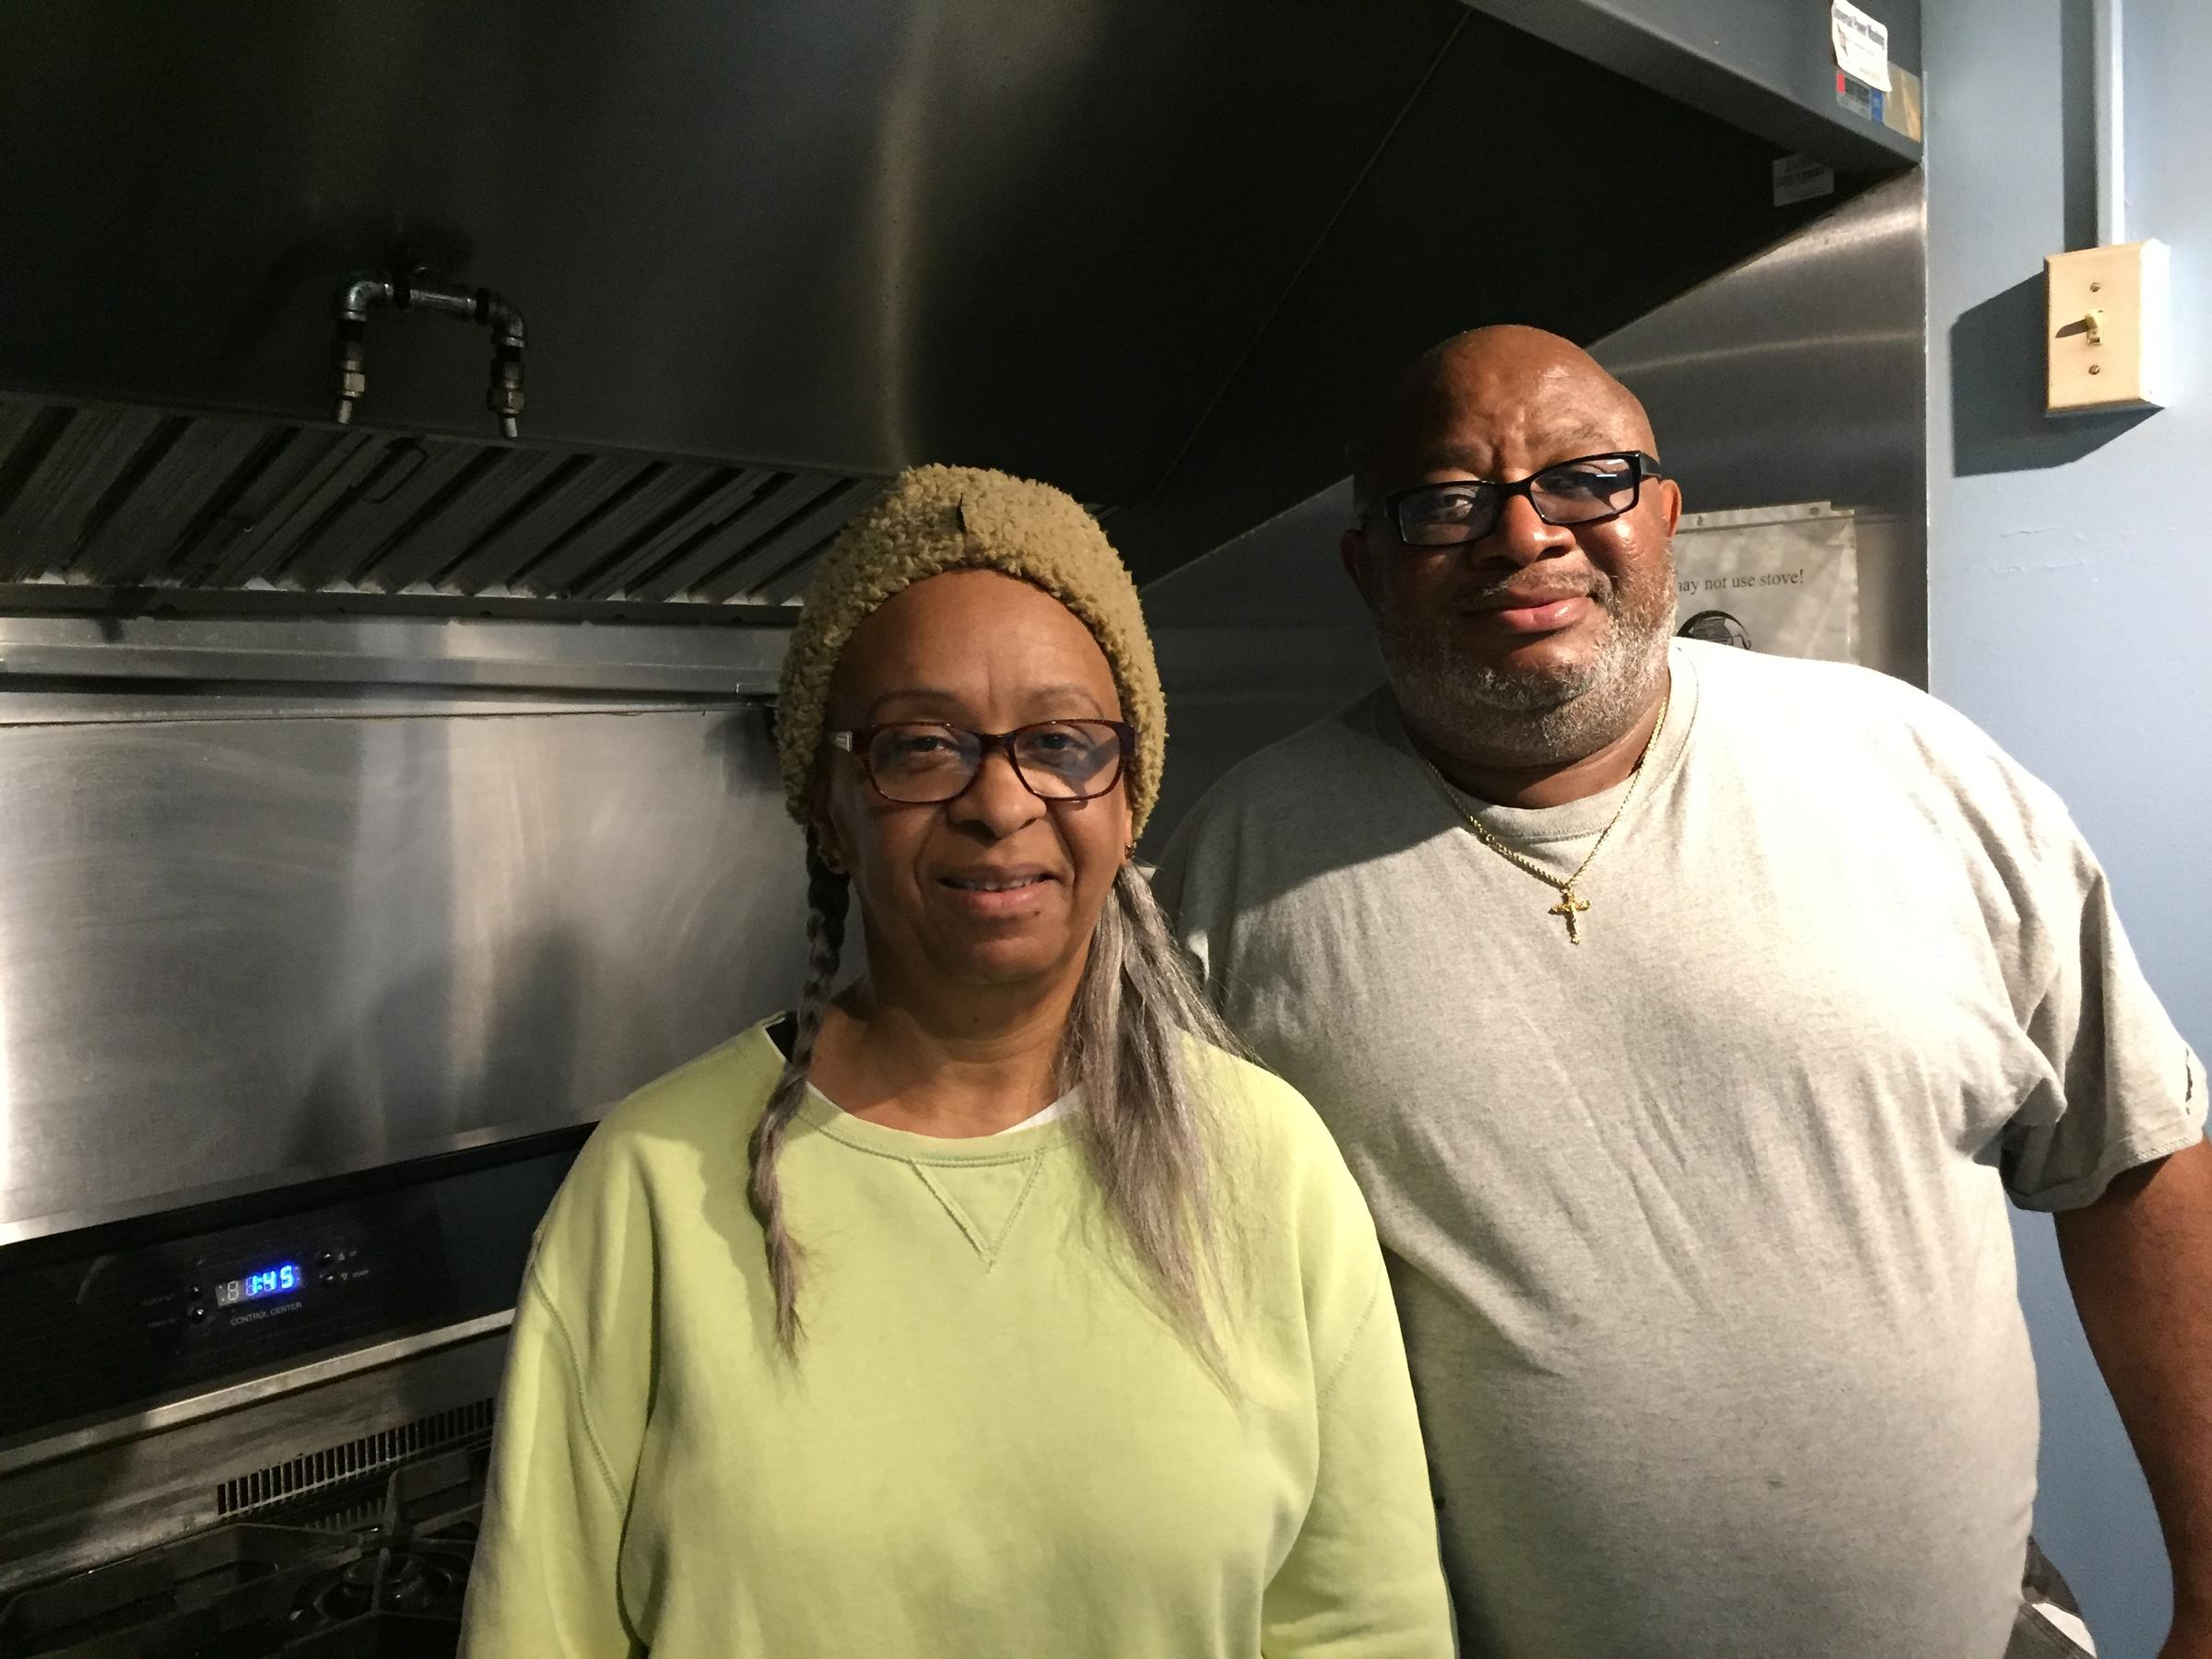 volunteers provide home cooking for homeless families | wkar